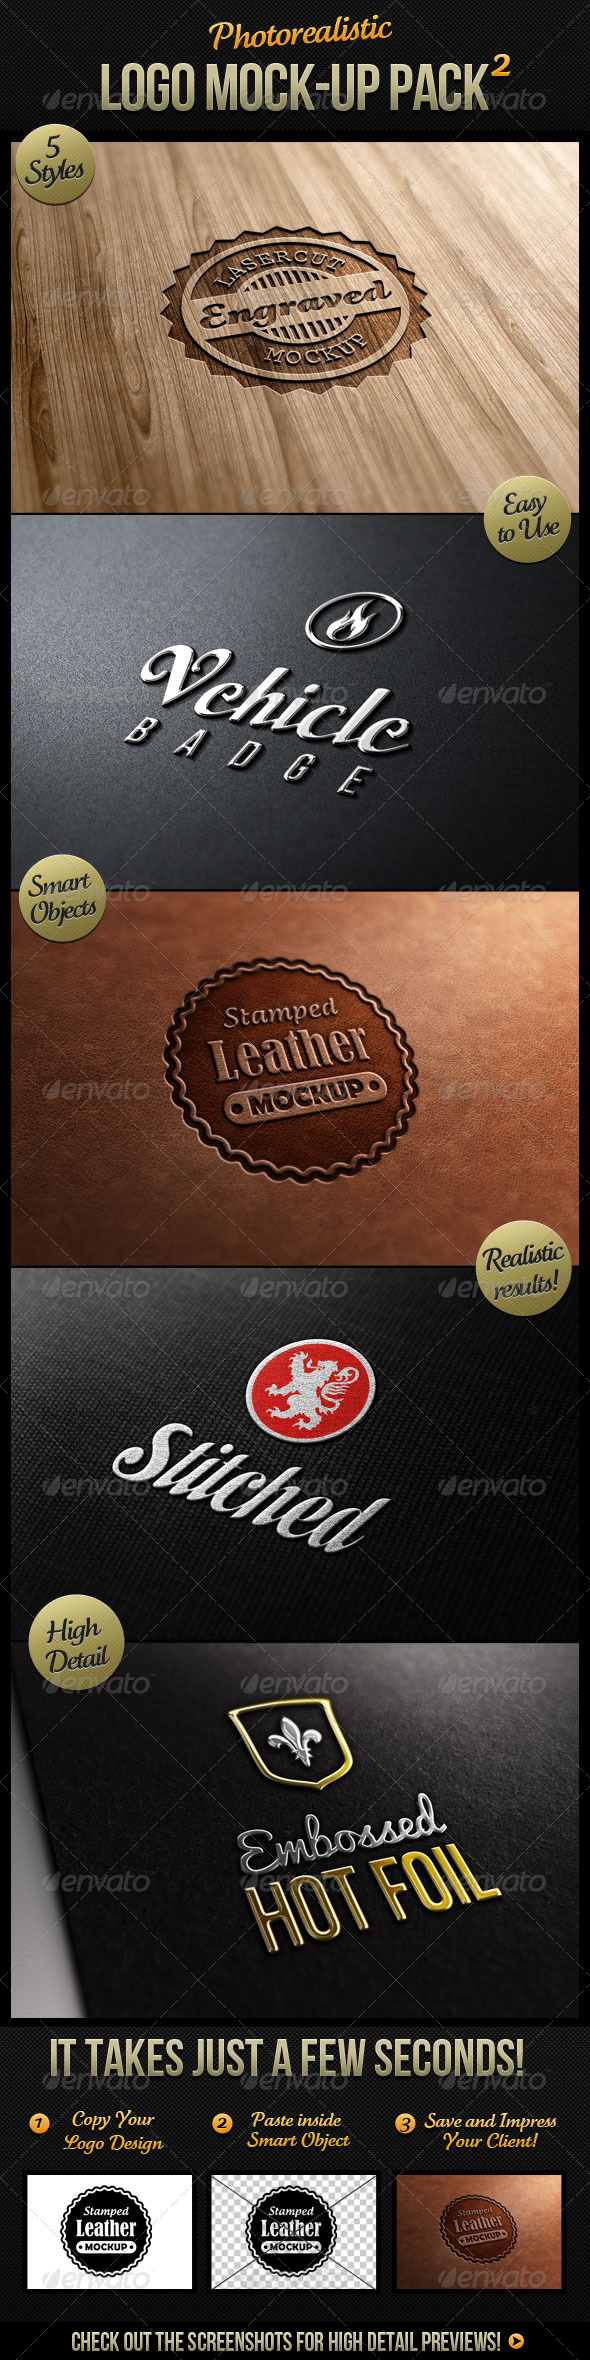 GraphicRiver Photorealistic Logo Mock-Up Pack 2 1984512